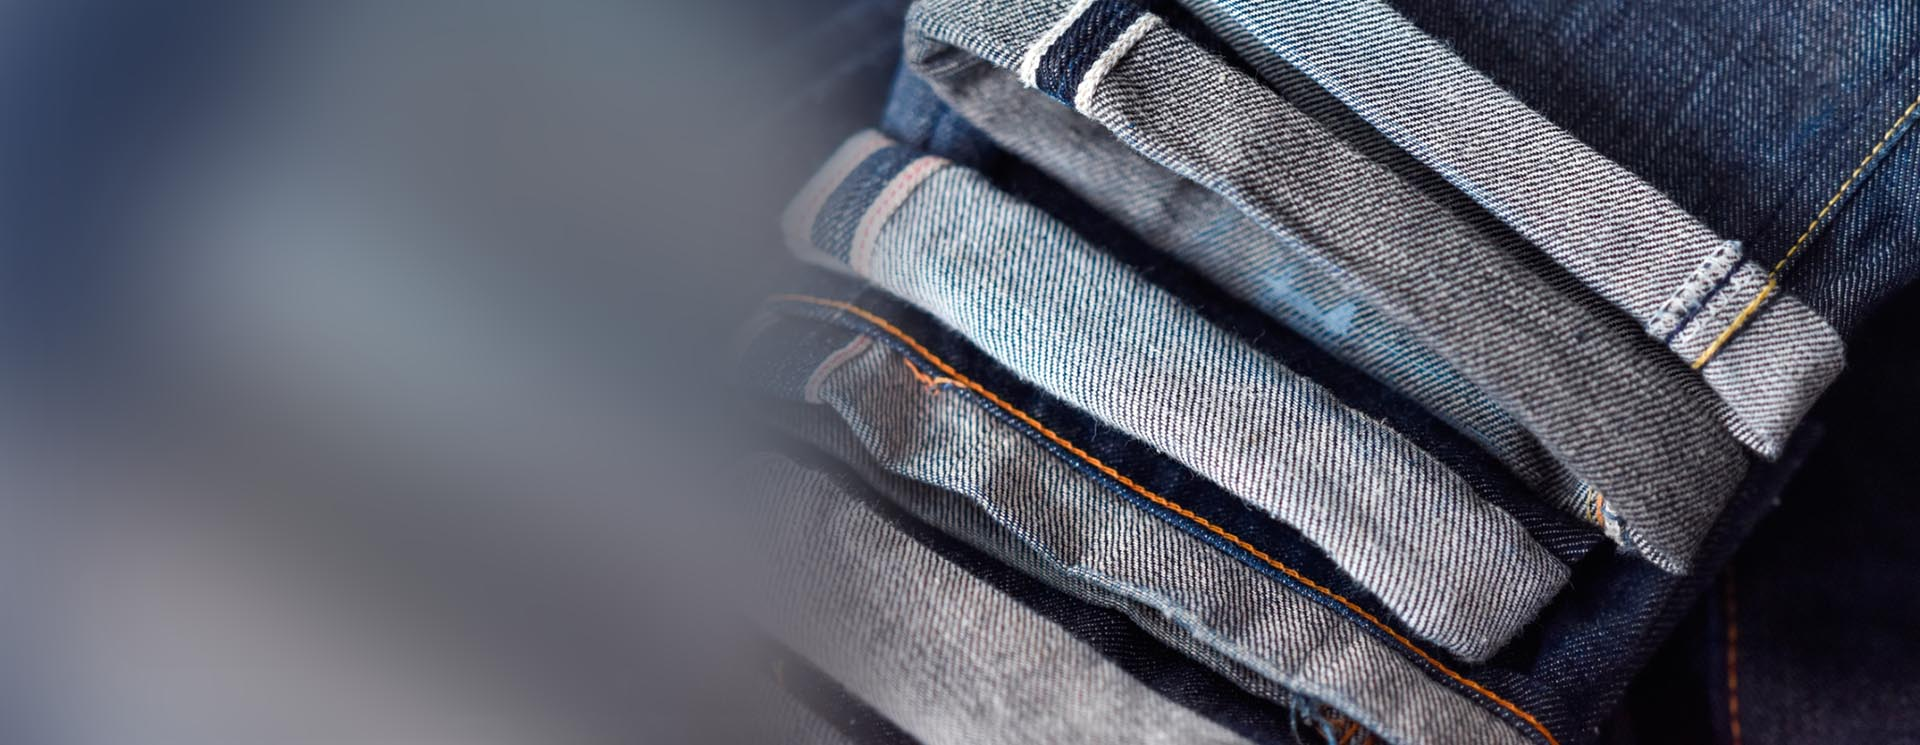 Denim should be a dynamic piece & something that develops character with every wear - wear Denim, wear Selvedge